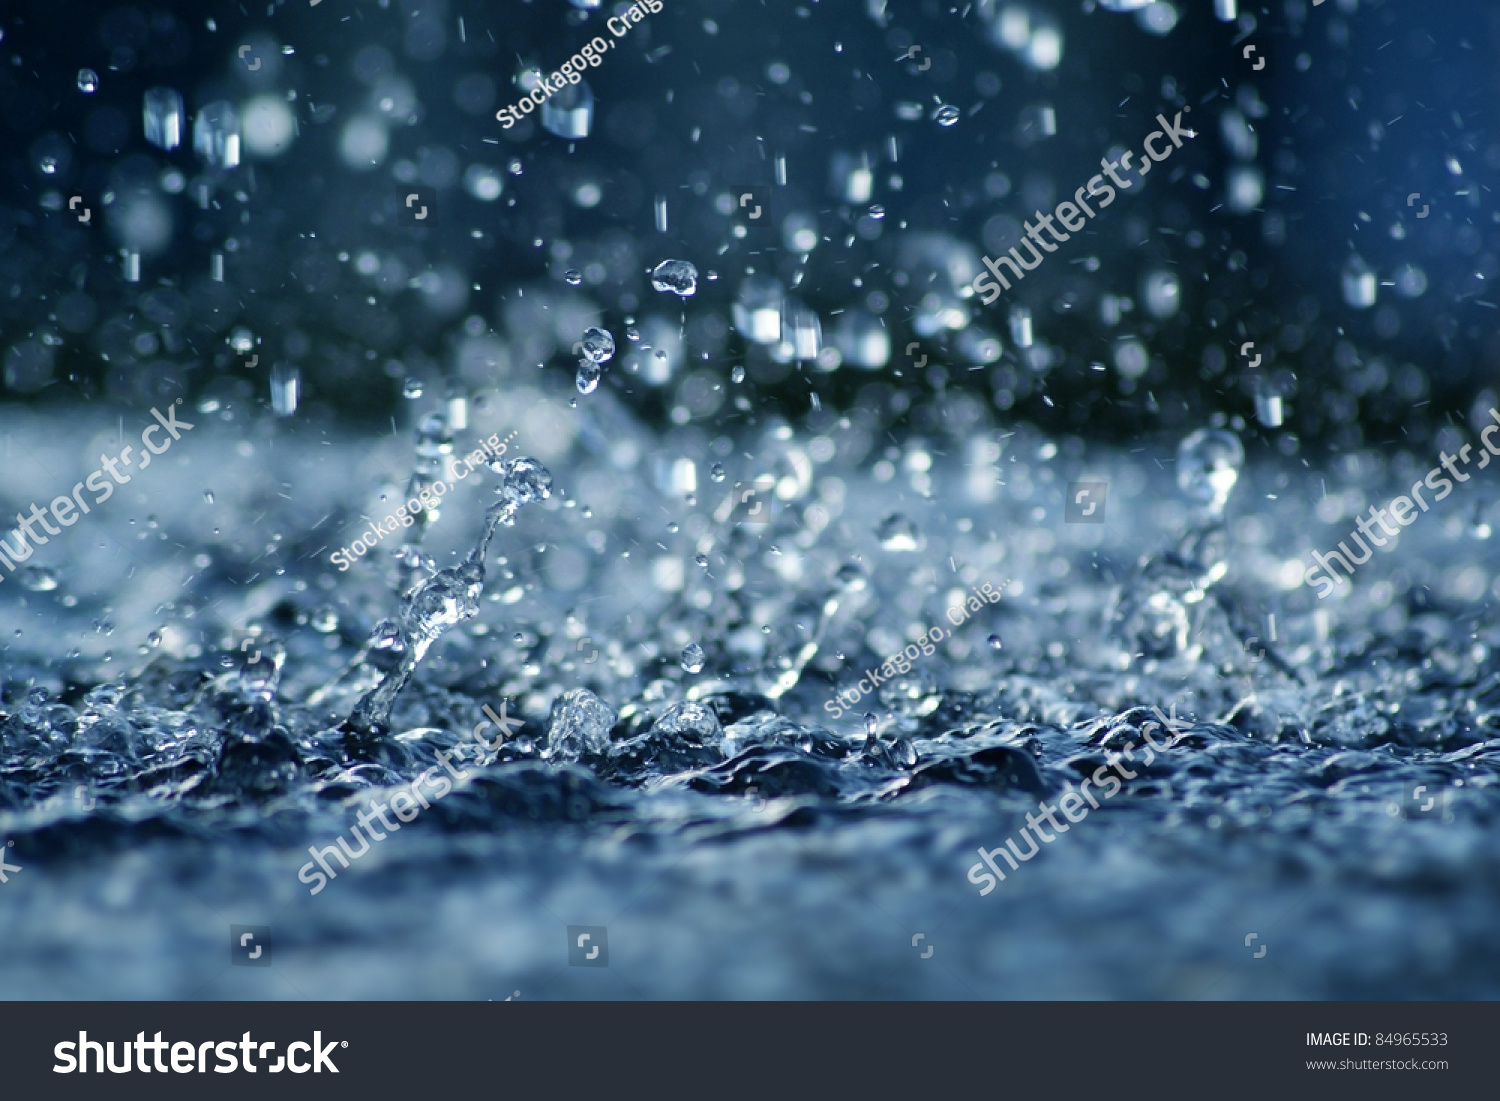 View Falling Rain Cast Blue Light Stock Photo 84965533